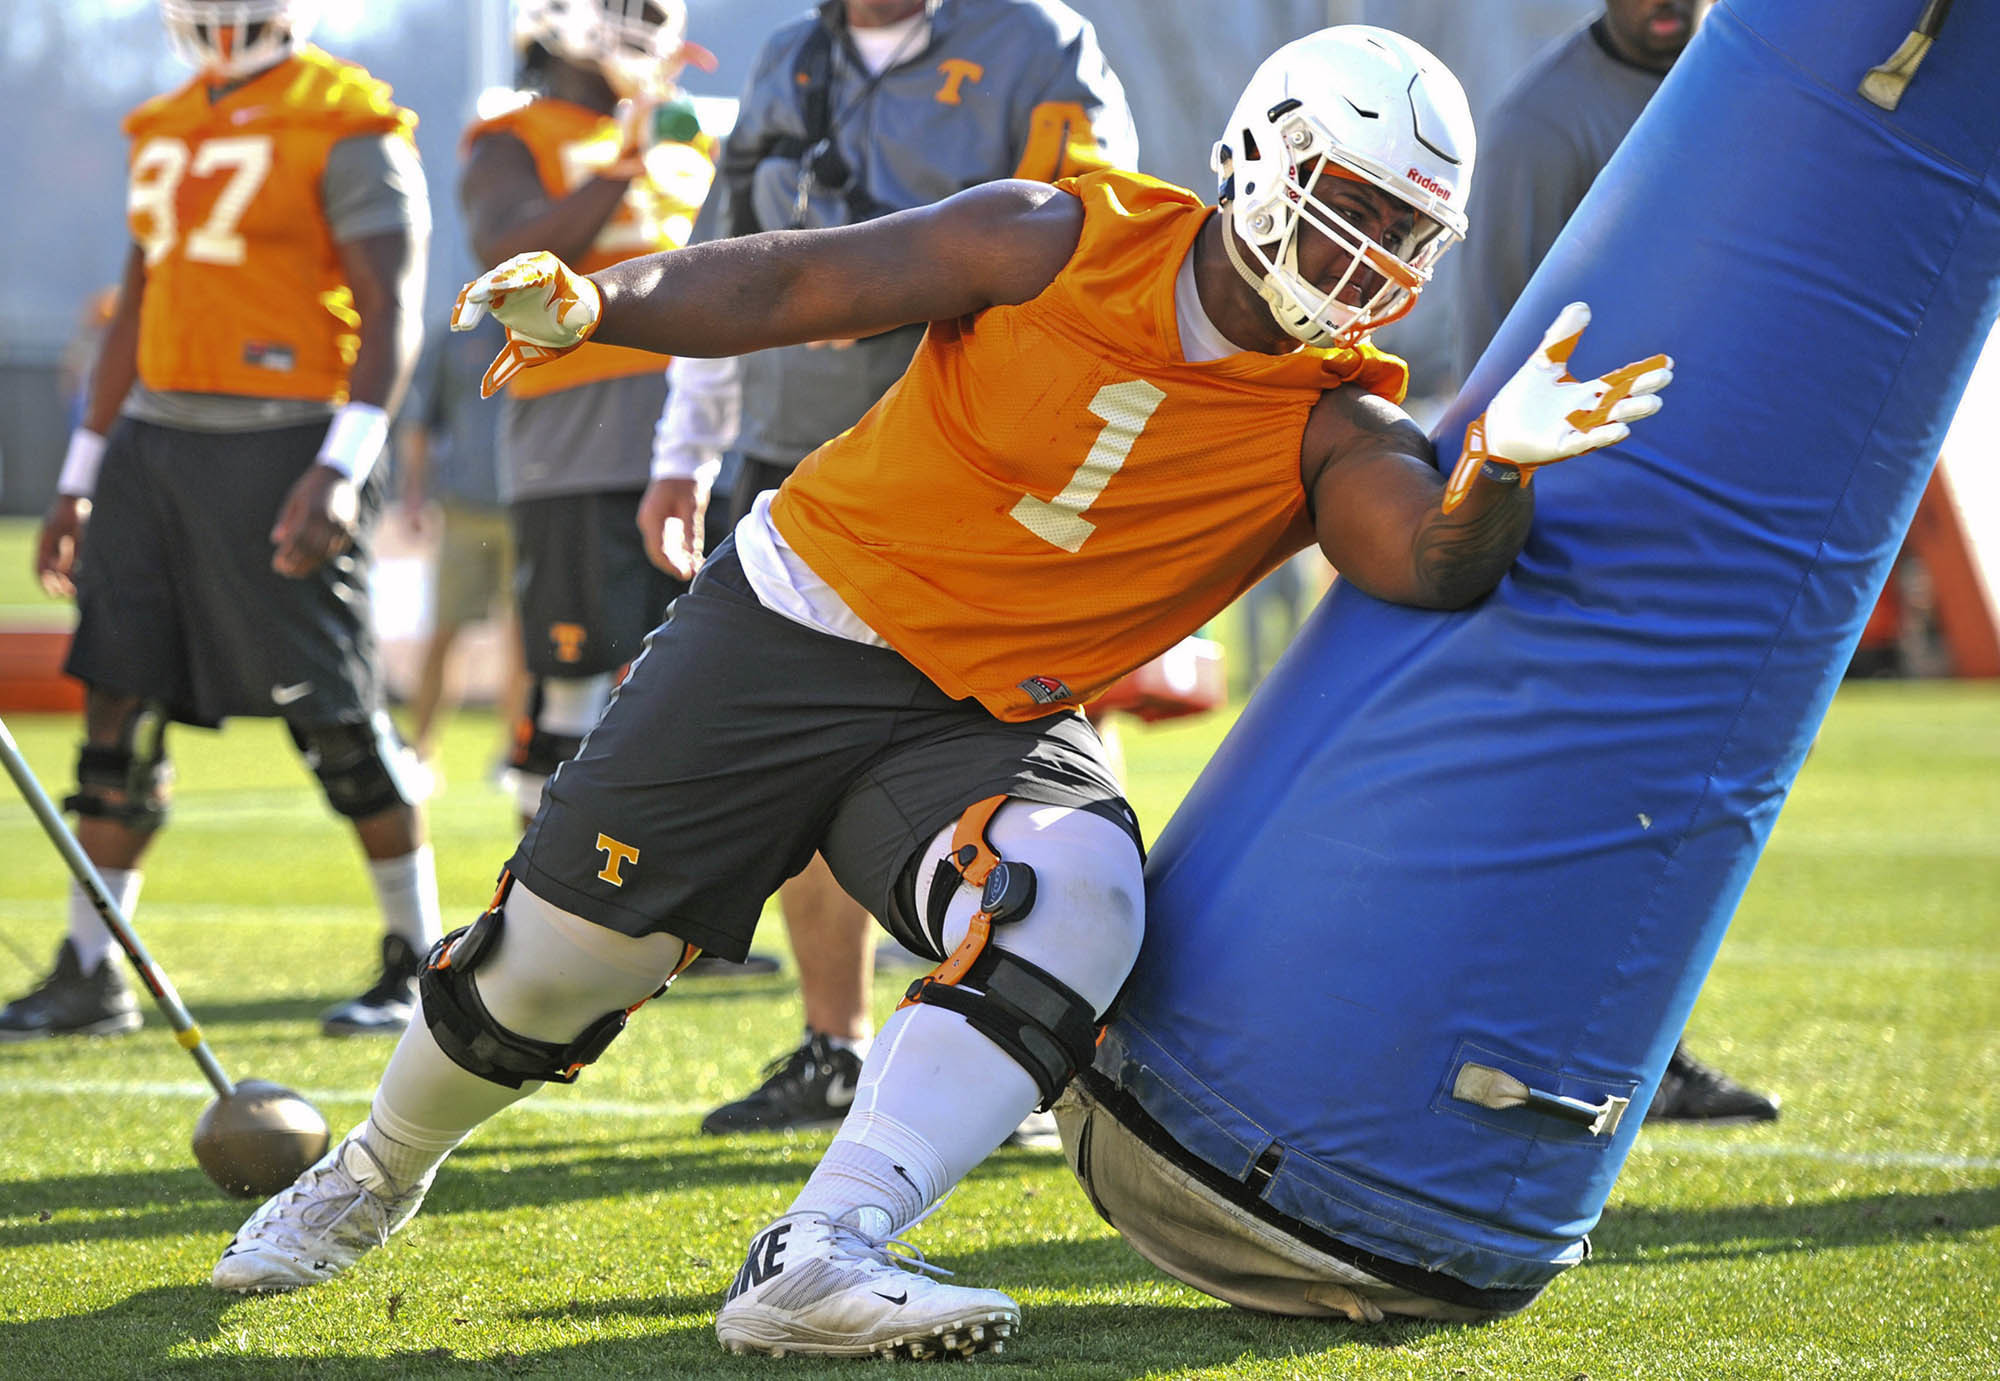 Tennessee defensive tackle Kahlil McKenzie participates in a drill during spring practice Tuesday, March 8, 2016, in Knoxville, Tenn. (Adam Lau/Knoxville News Sentinel via AP)